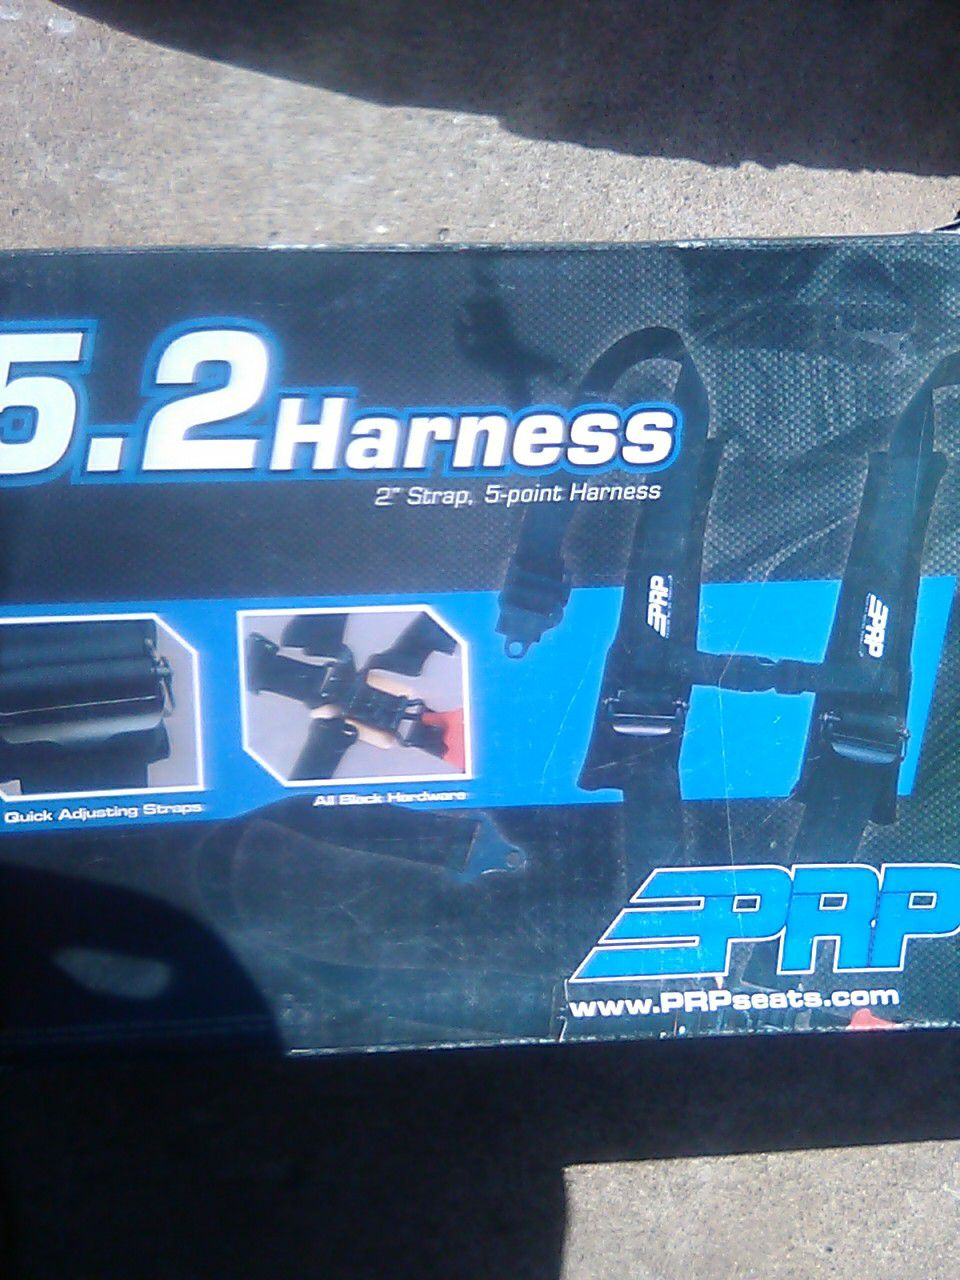 Full harness seat belts and hardware